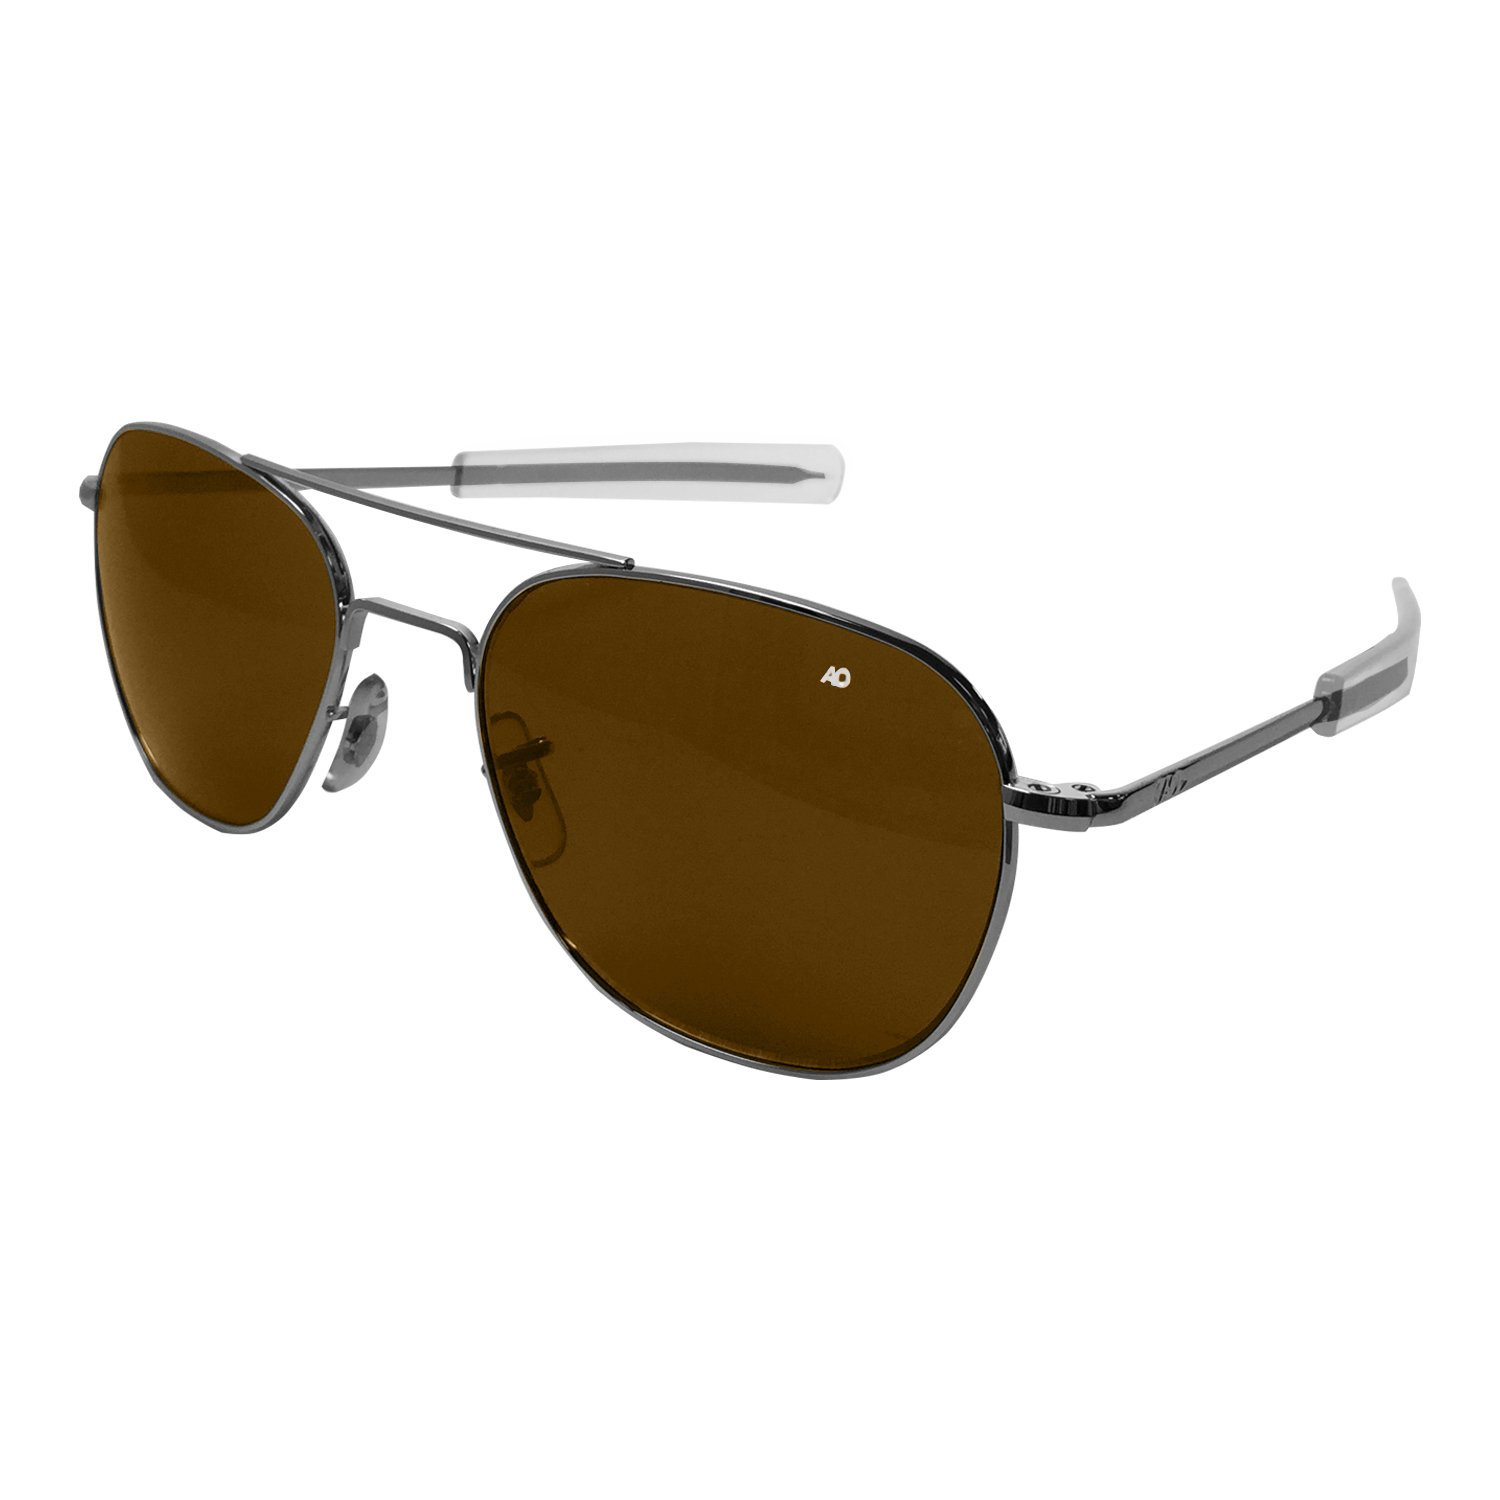 c235cfee7ee Amazon.com  American Optical Original Pilot Eyewear 55mm Silver Frame with  Bayonet Temples and True Color Gray Glass Lens  Sports   Outdoors